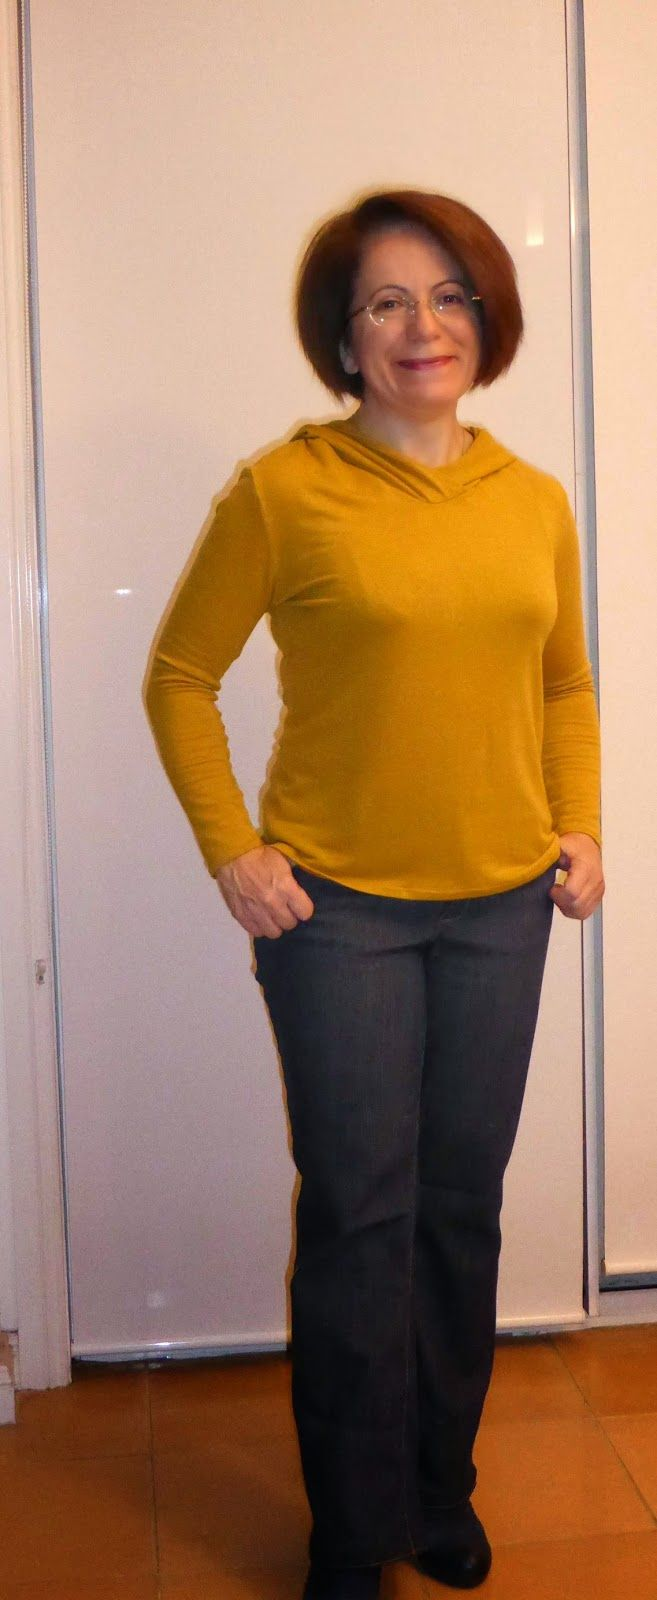 Jalie jeans updated to wear with heels. Top using Tessutis Alexa tee using merino knit.